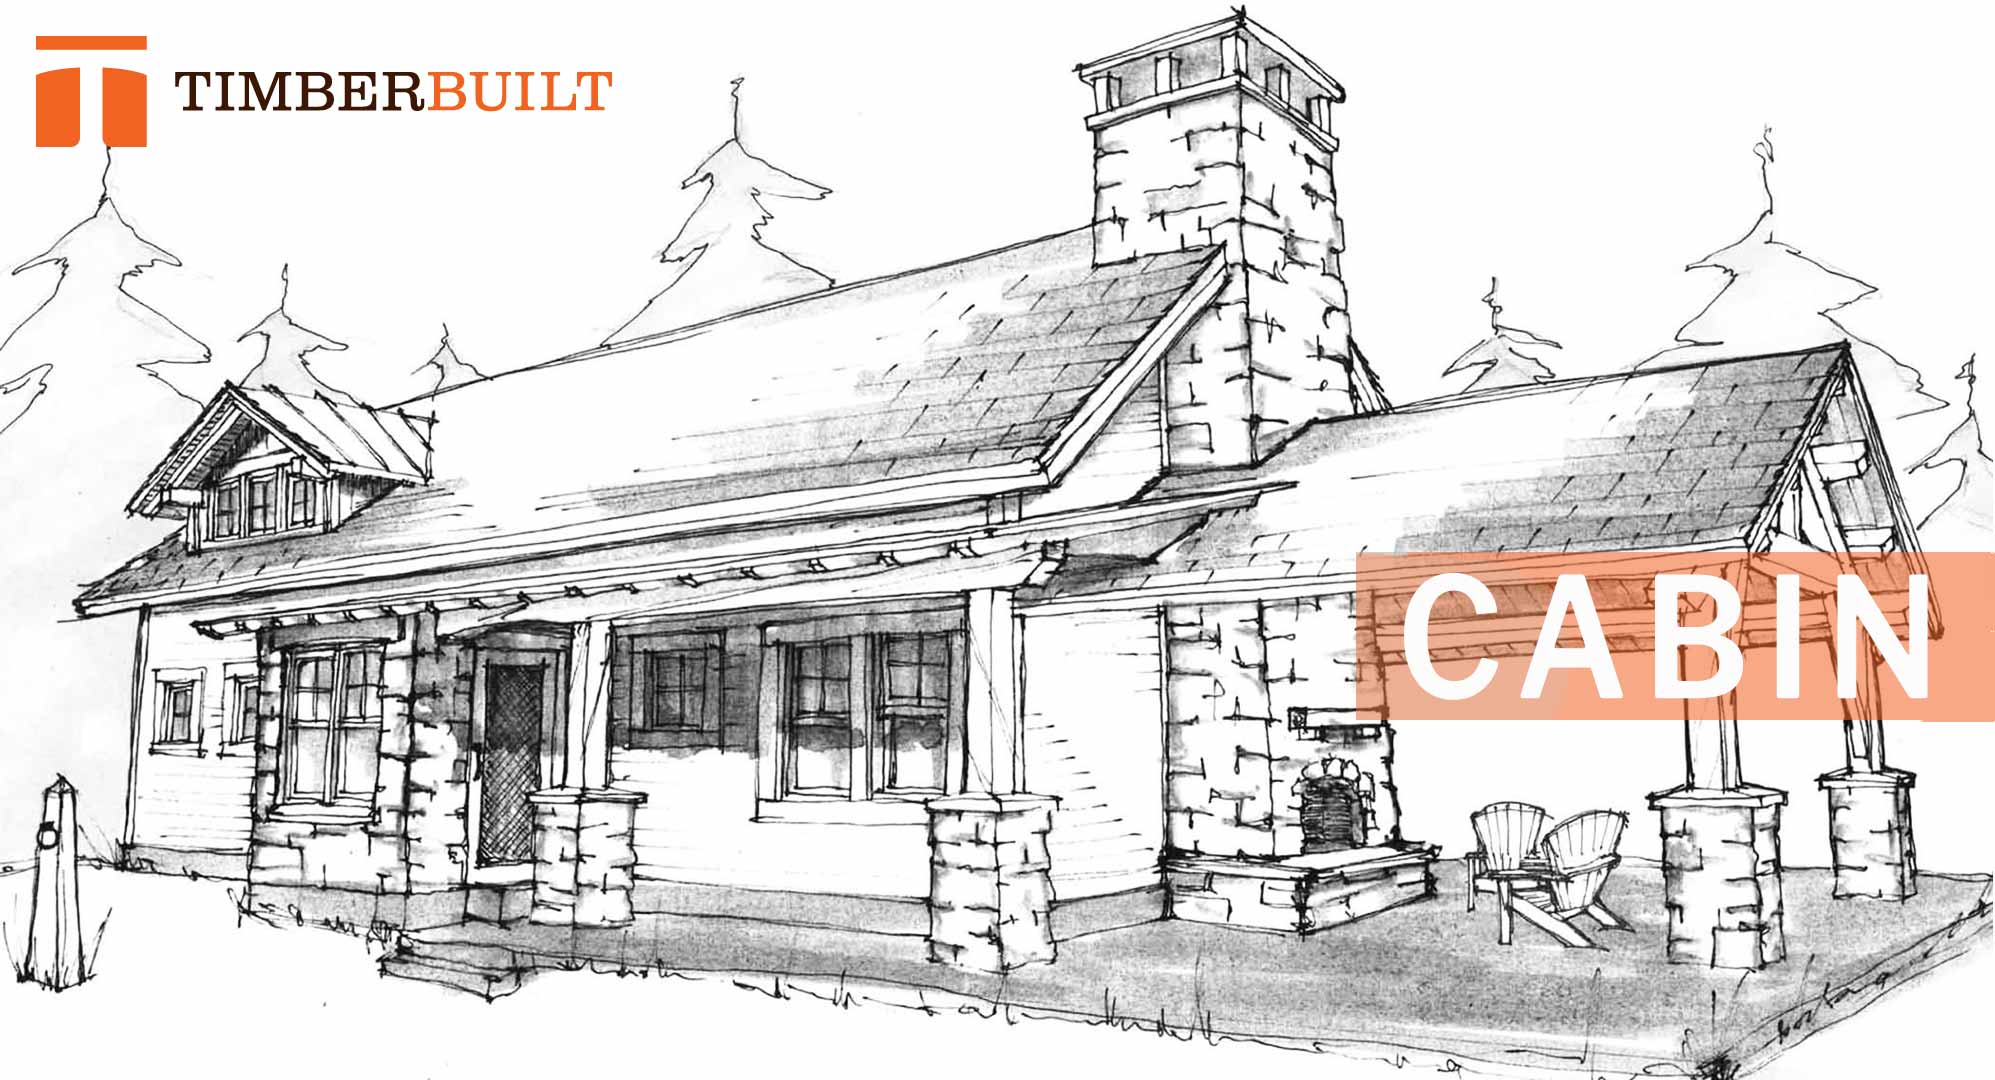 timber frame home design. Our cabin timber frame design featuring a fireplace and porch Timber Frame Home Designs  Cabin Timberbuilt